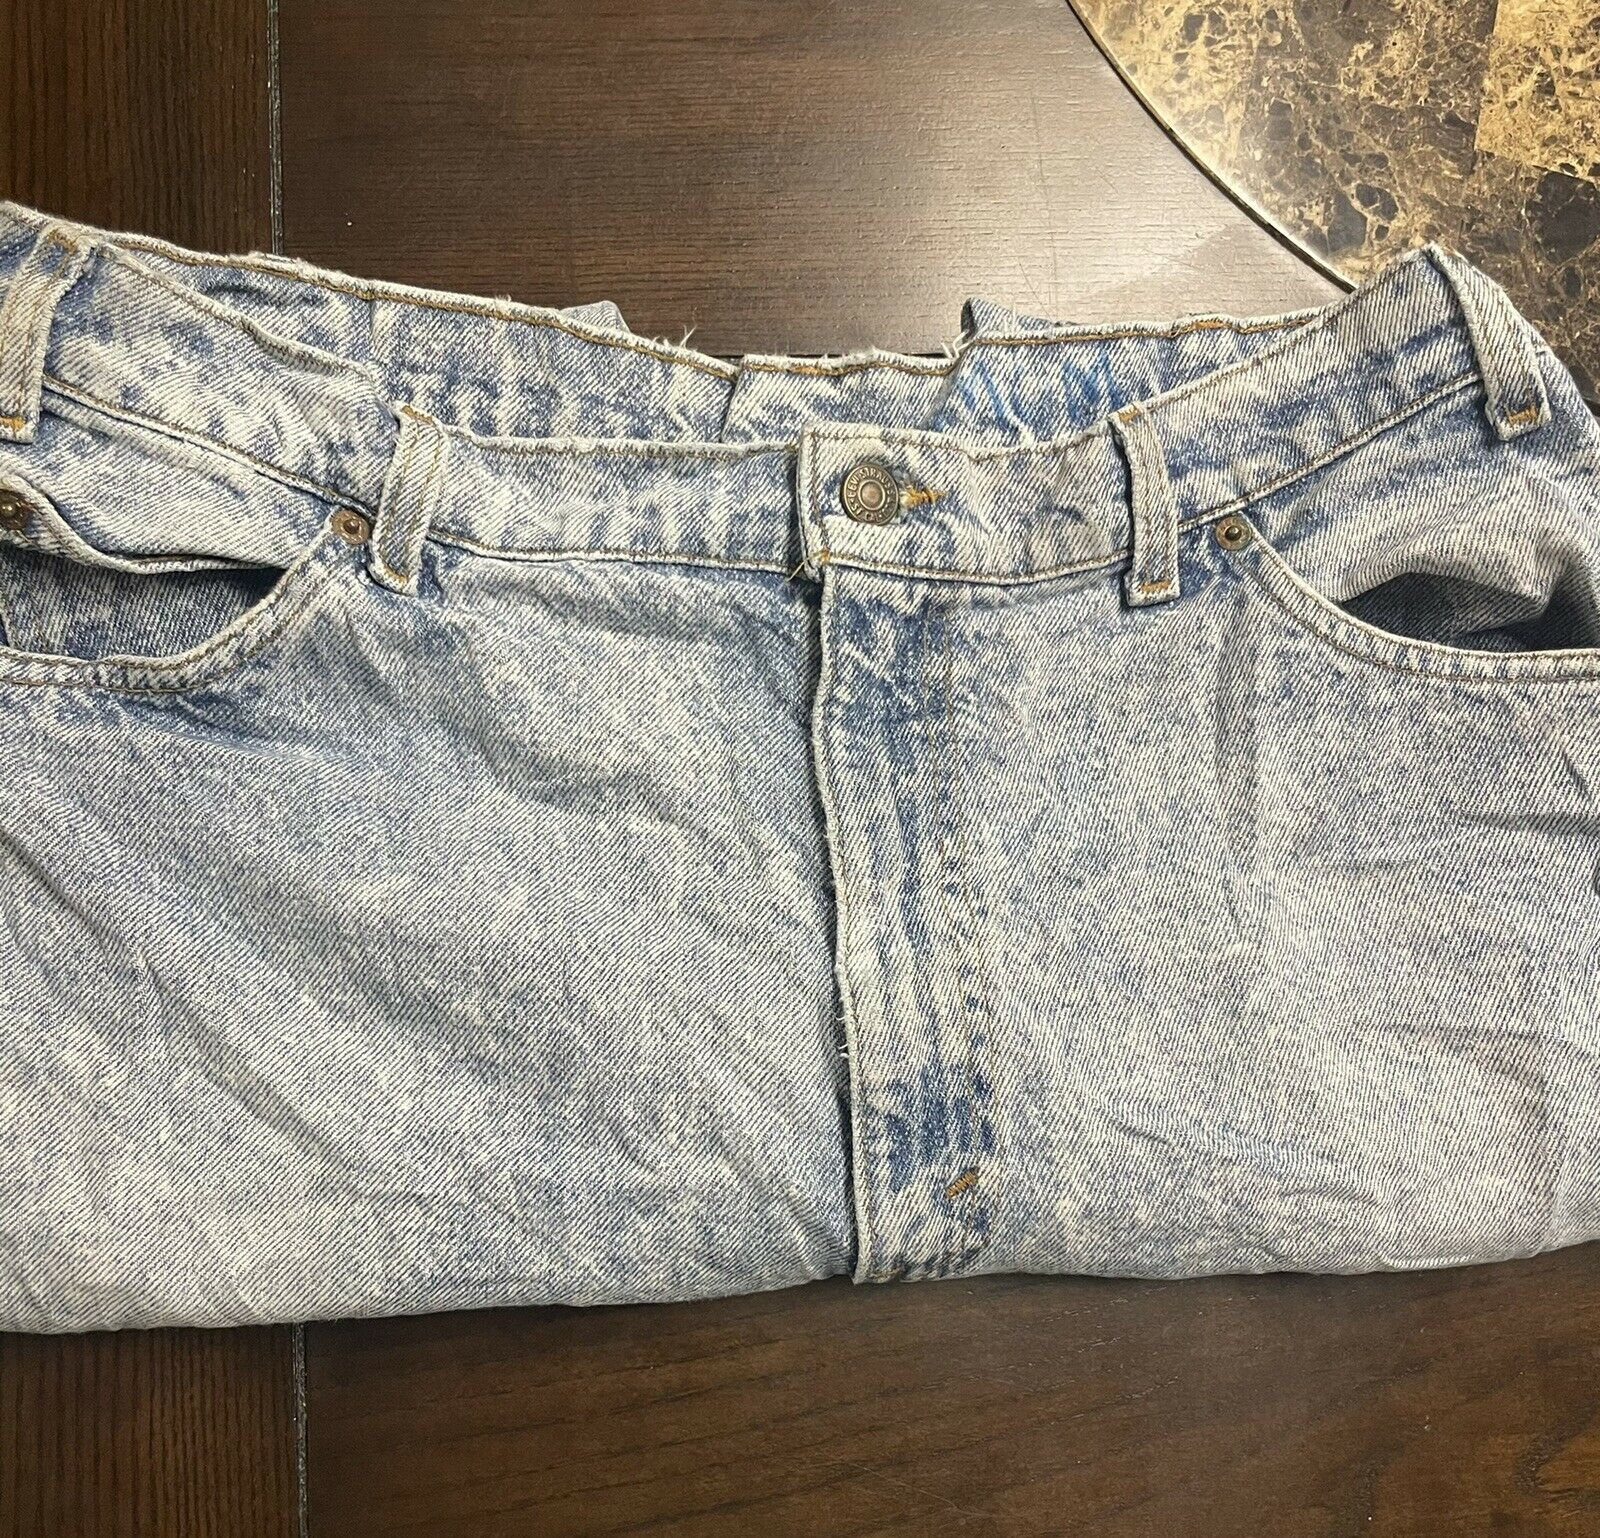 vintage levis jeans 501 made in usa - image 5